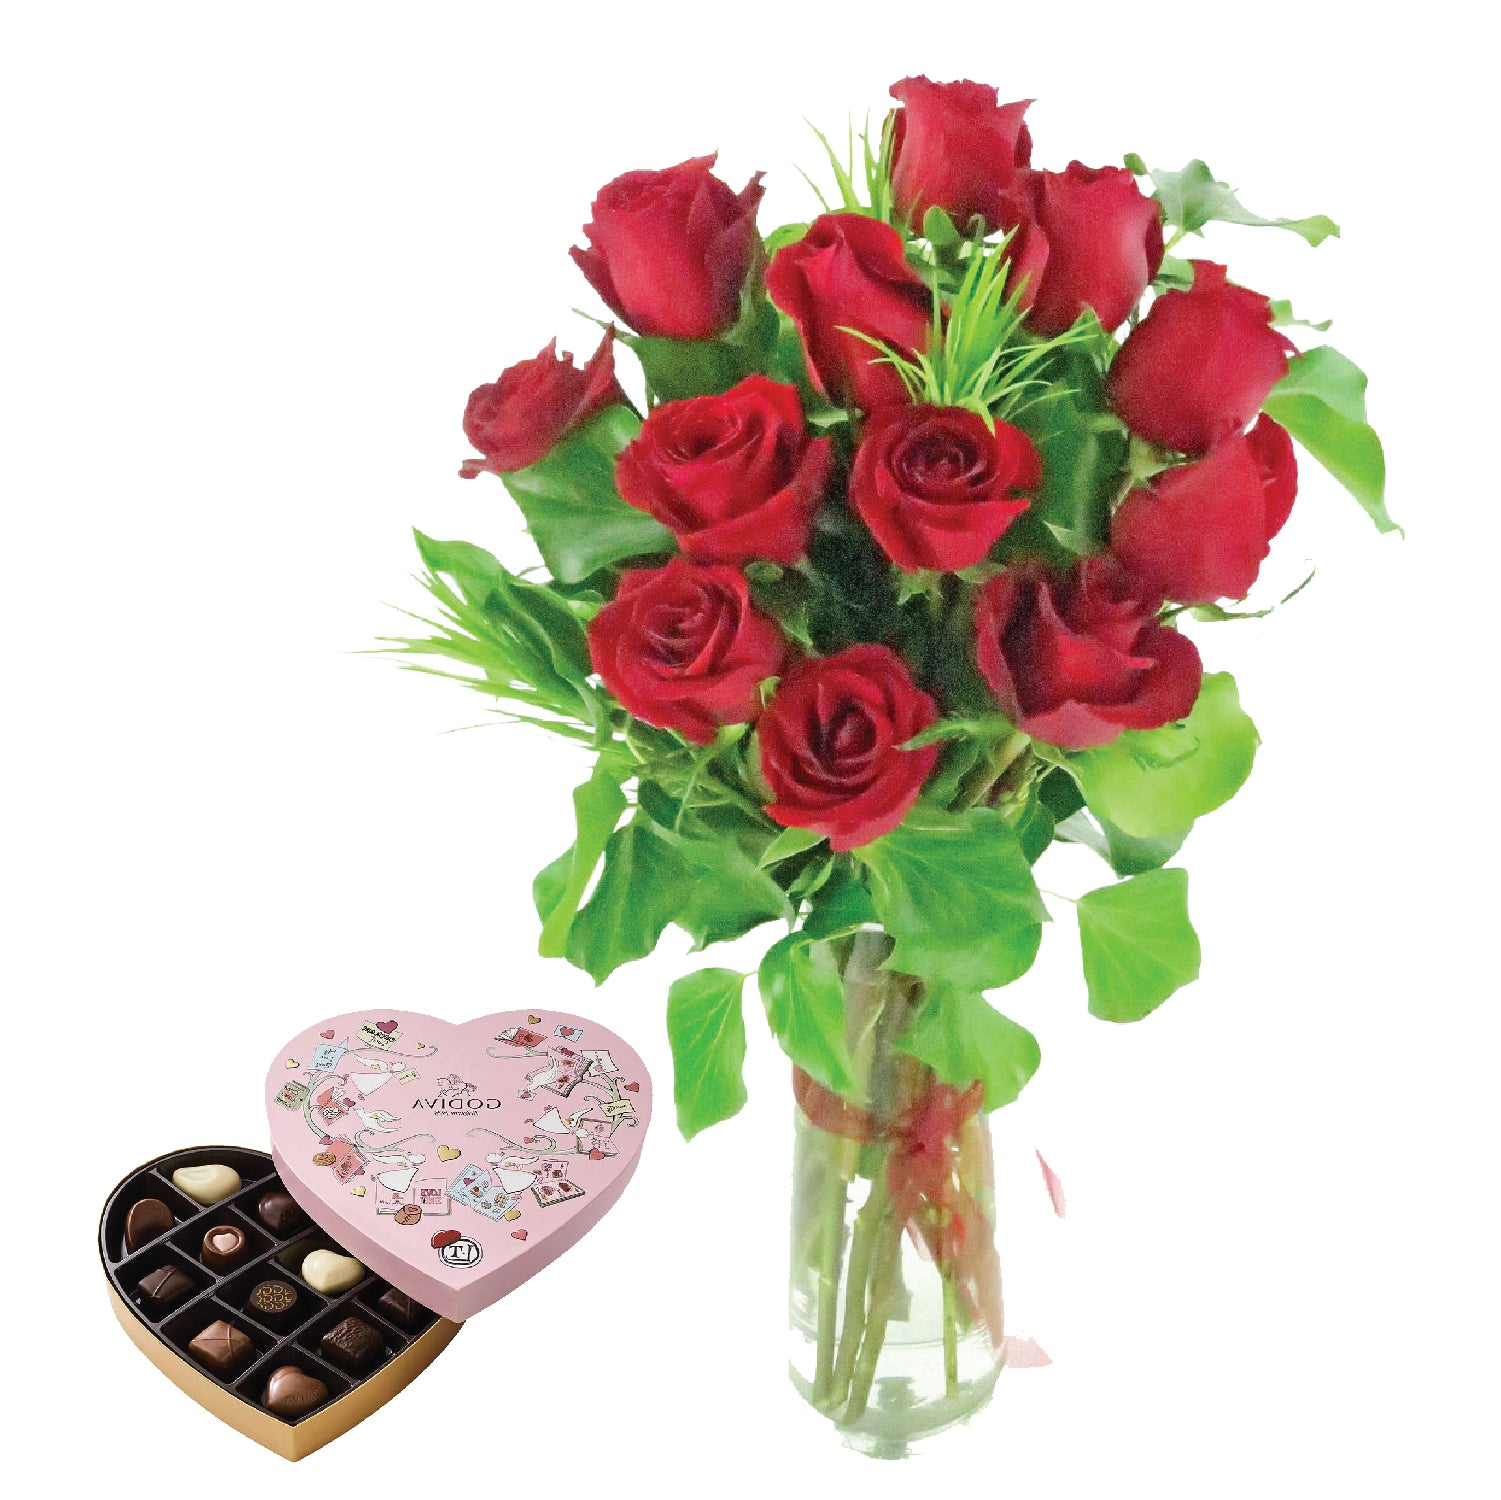 12 Rose Vase with  GODIVA Heart Chocolate Gift Box